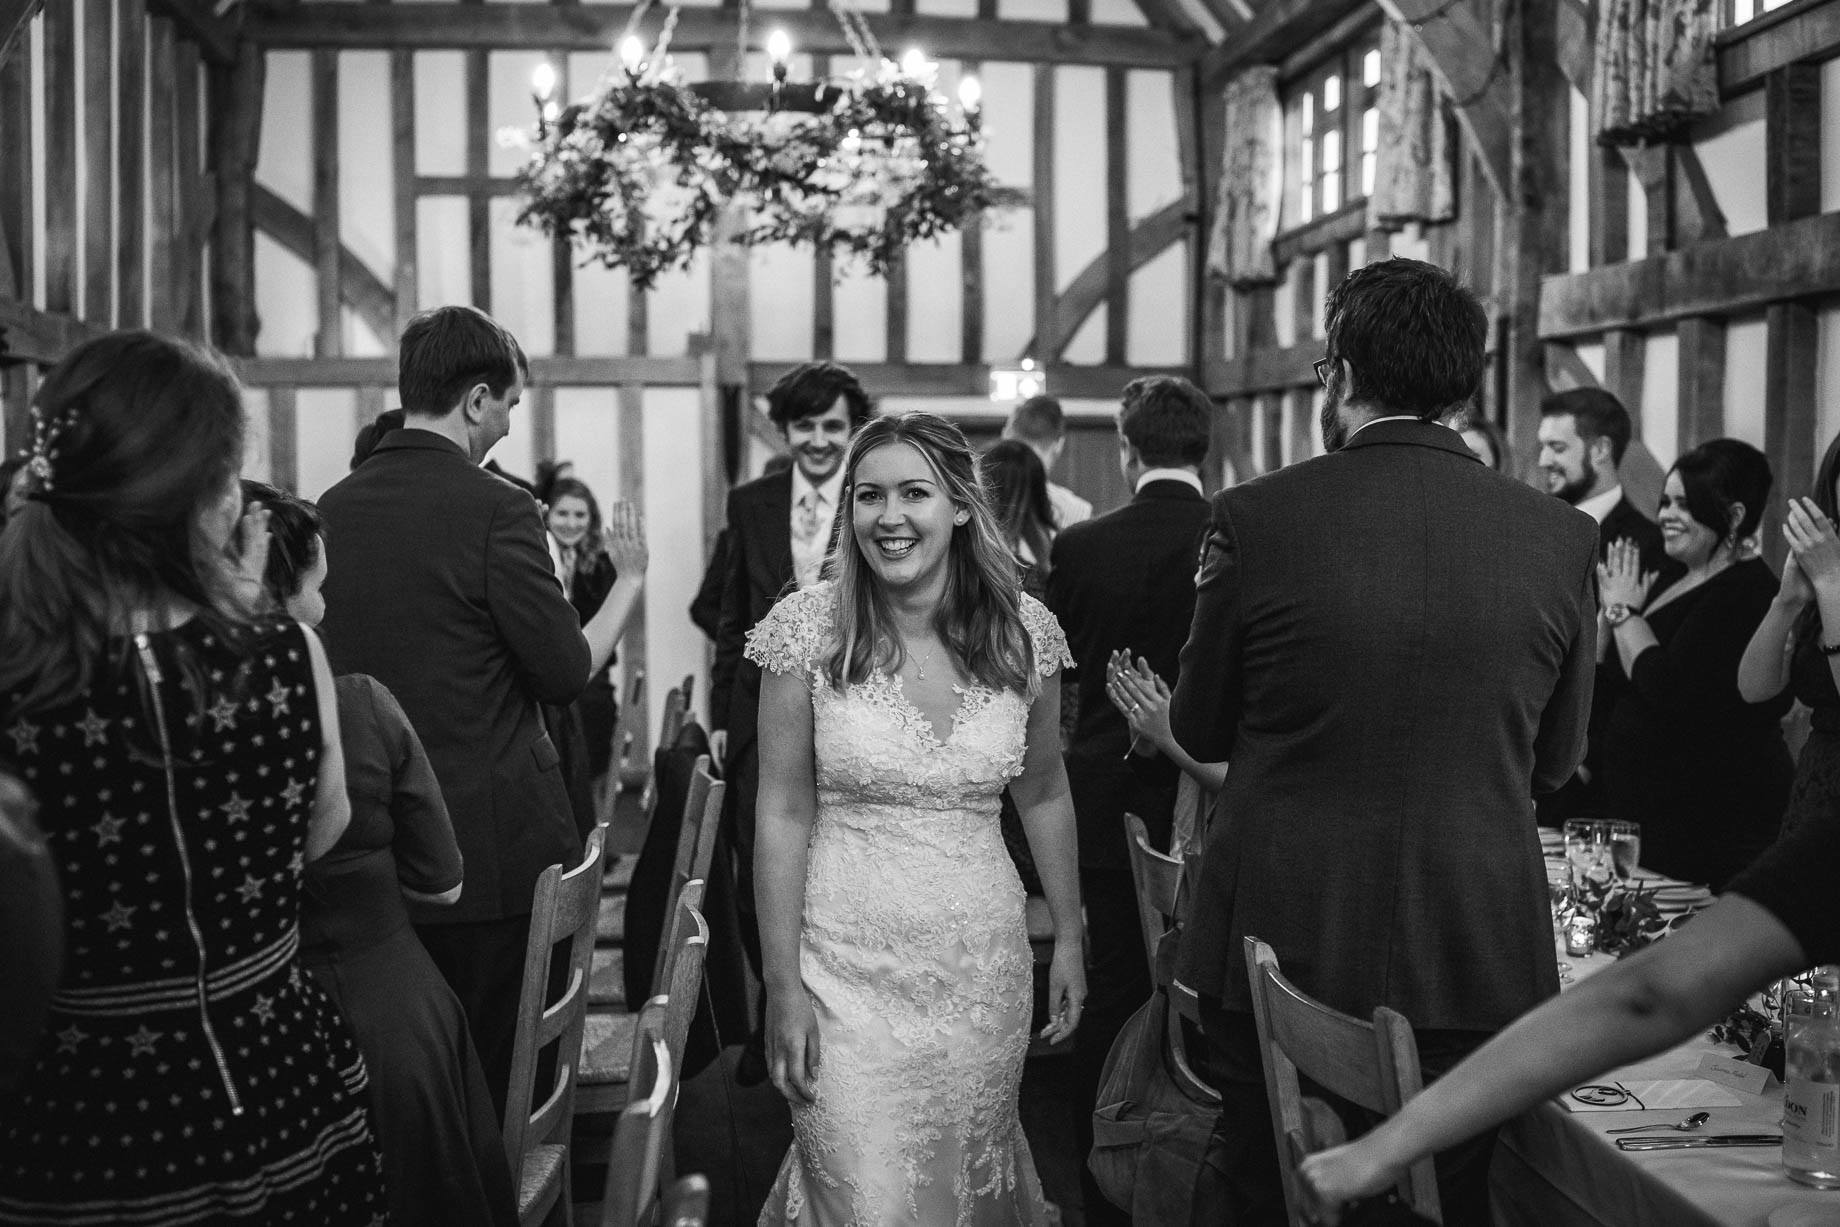 Gate Street Barn wedding photography - Susie + James